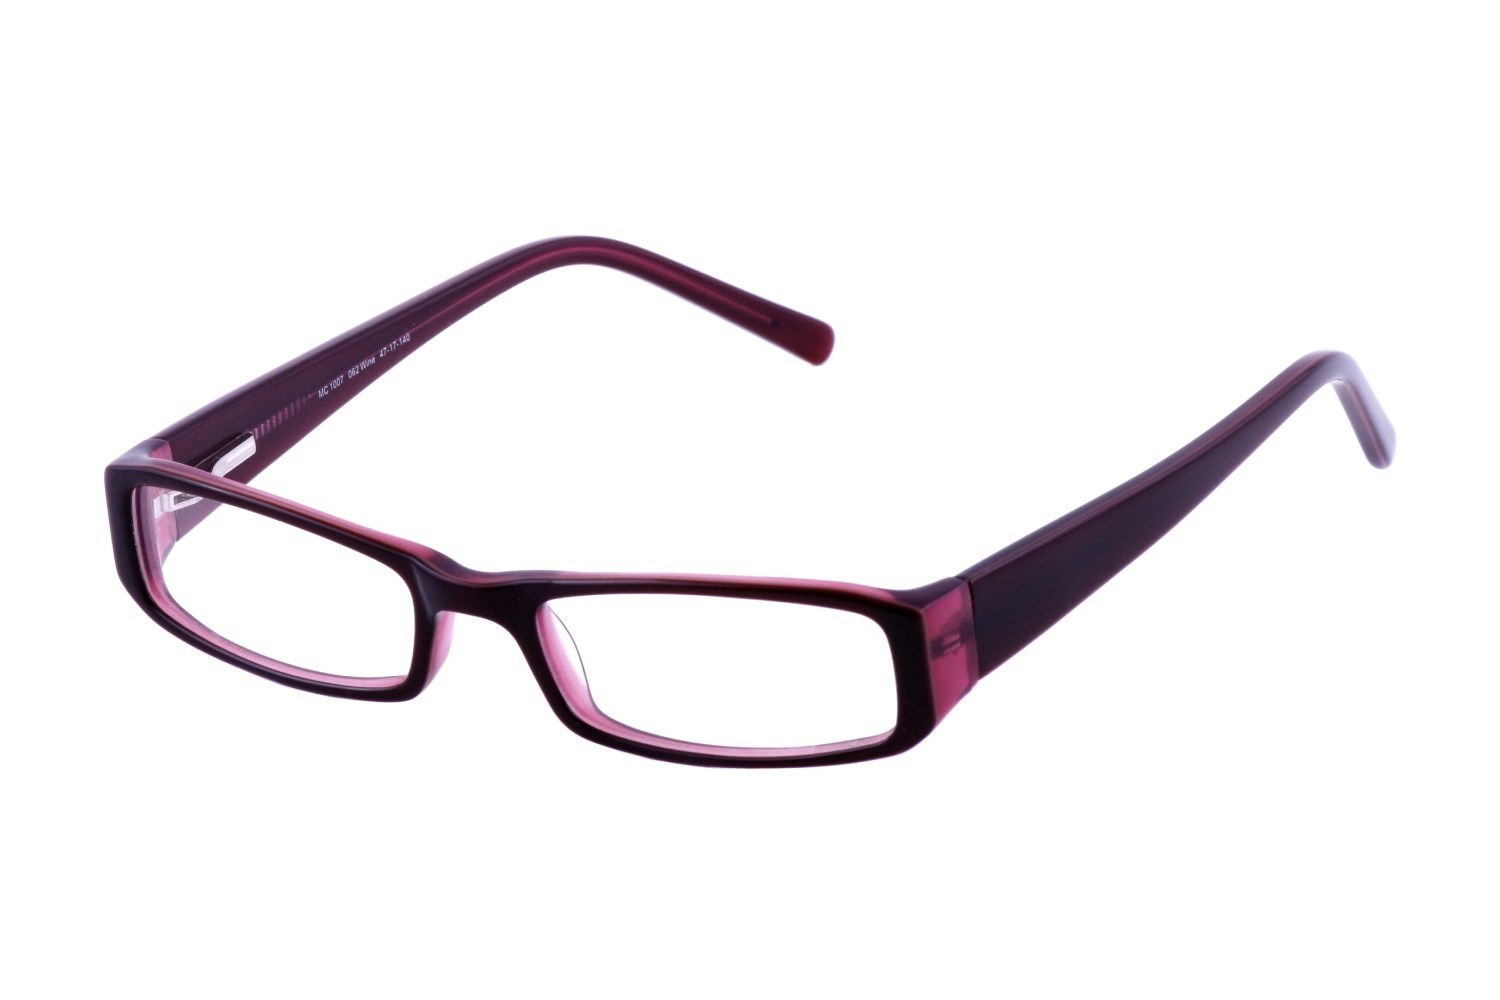 Mini Commotion MC 1007 Prescription Eyeglasses Frames